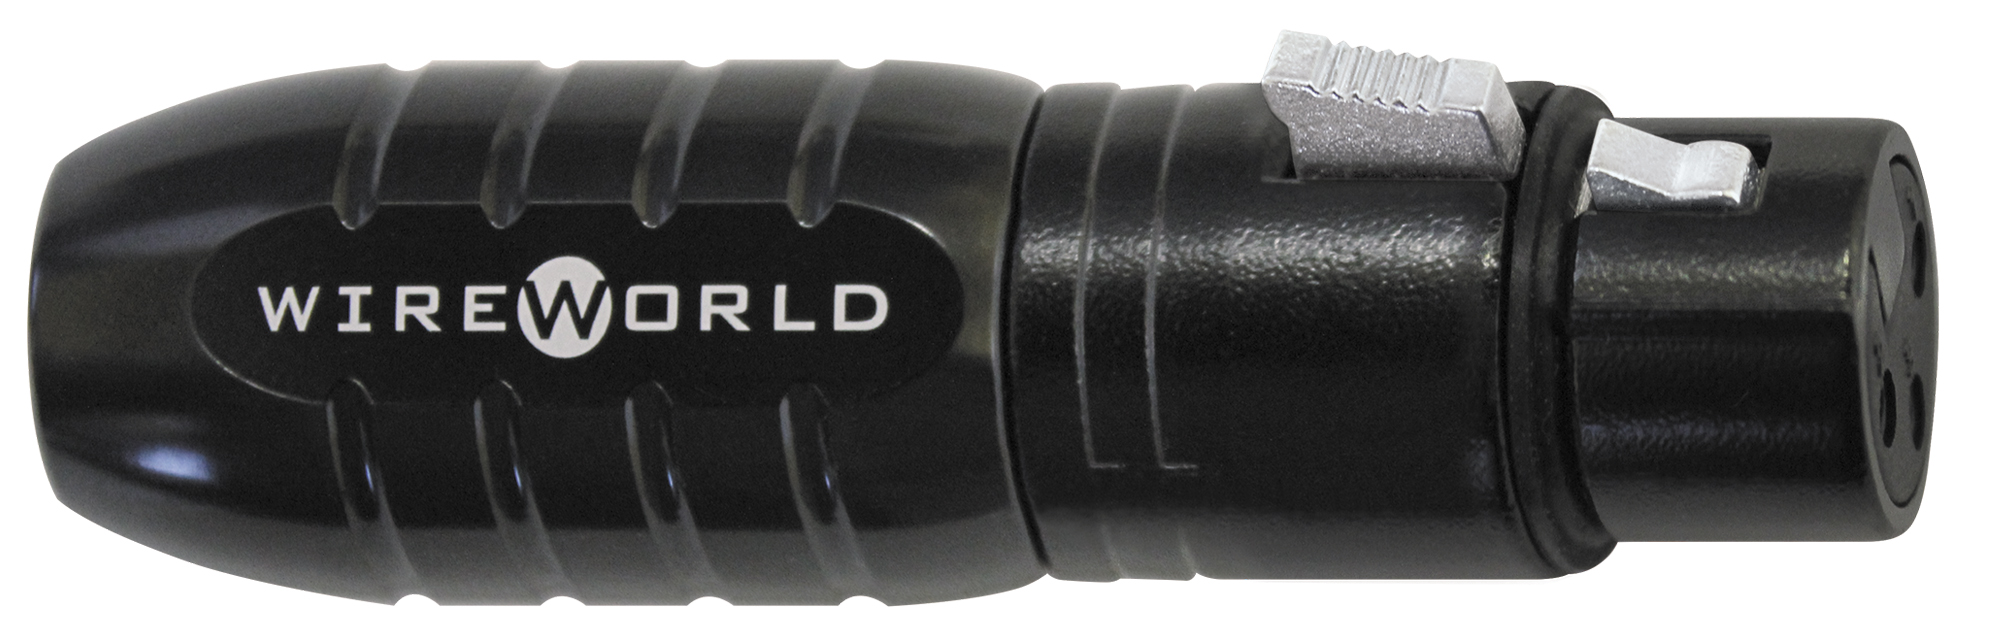 Wireworld Konektor XLR Reference